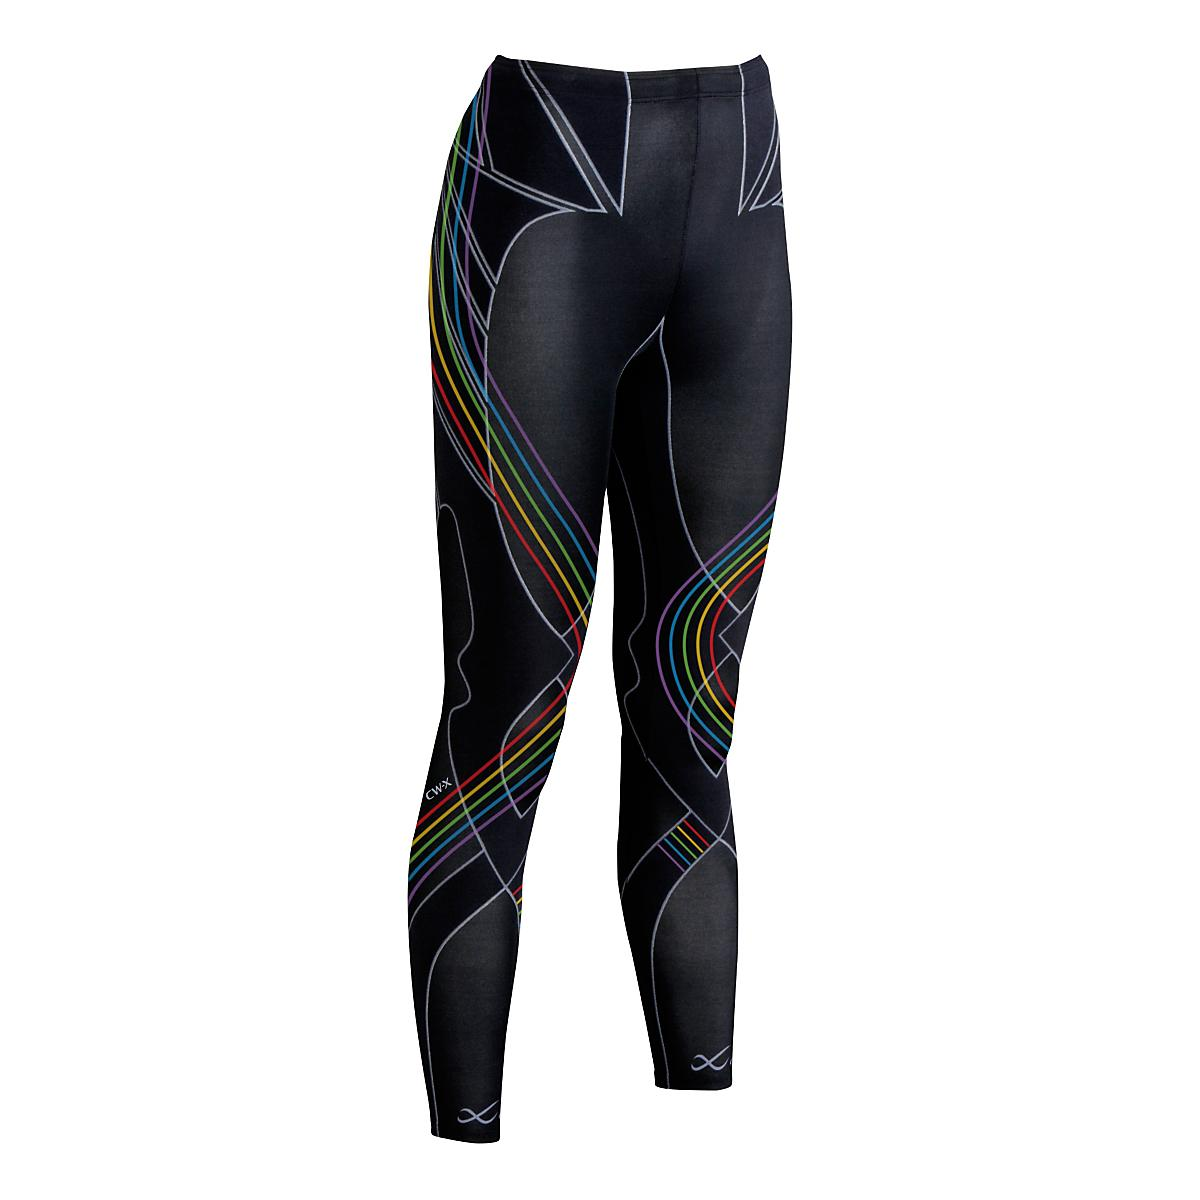 Women's CW-X�Revolution Tight